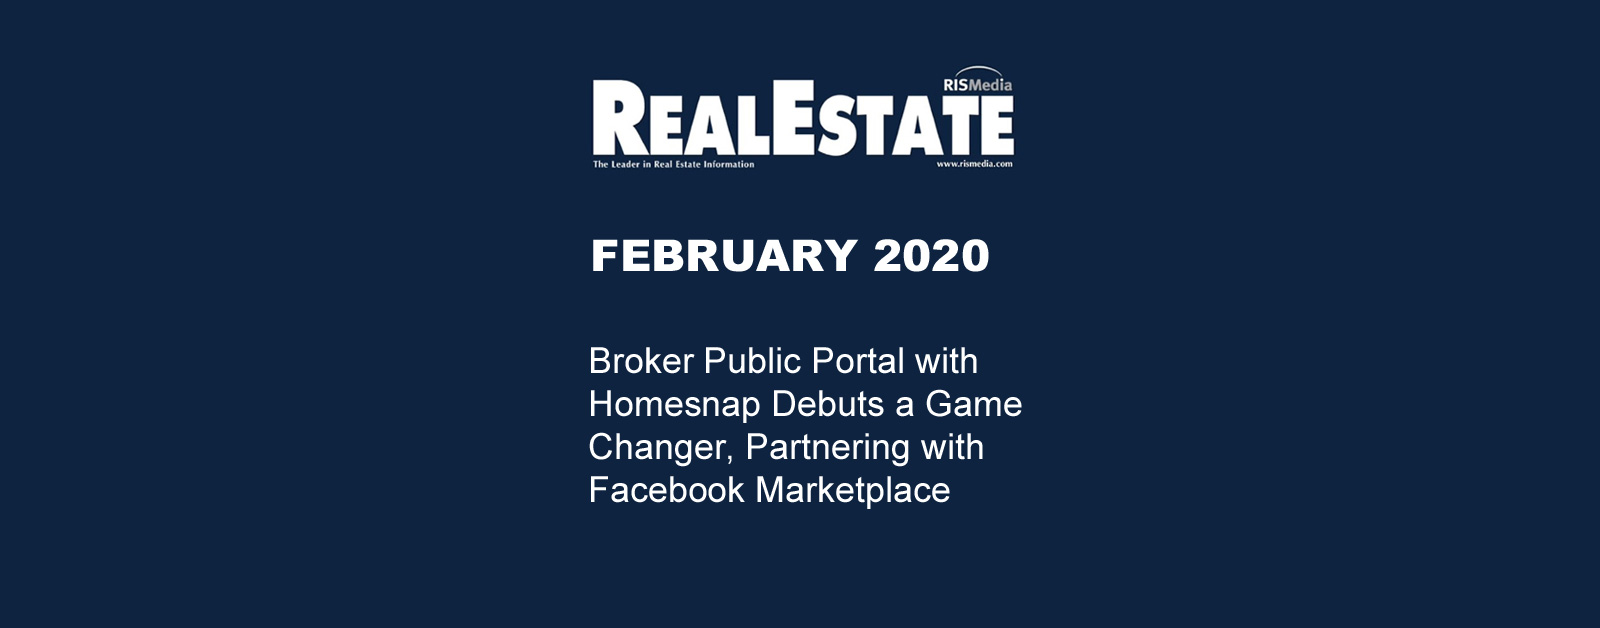 Real Estate Magazine February